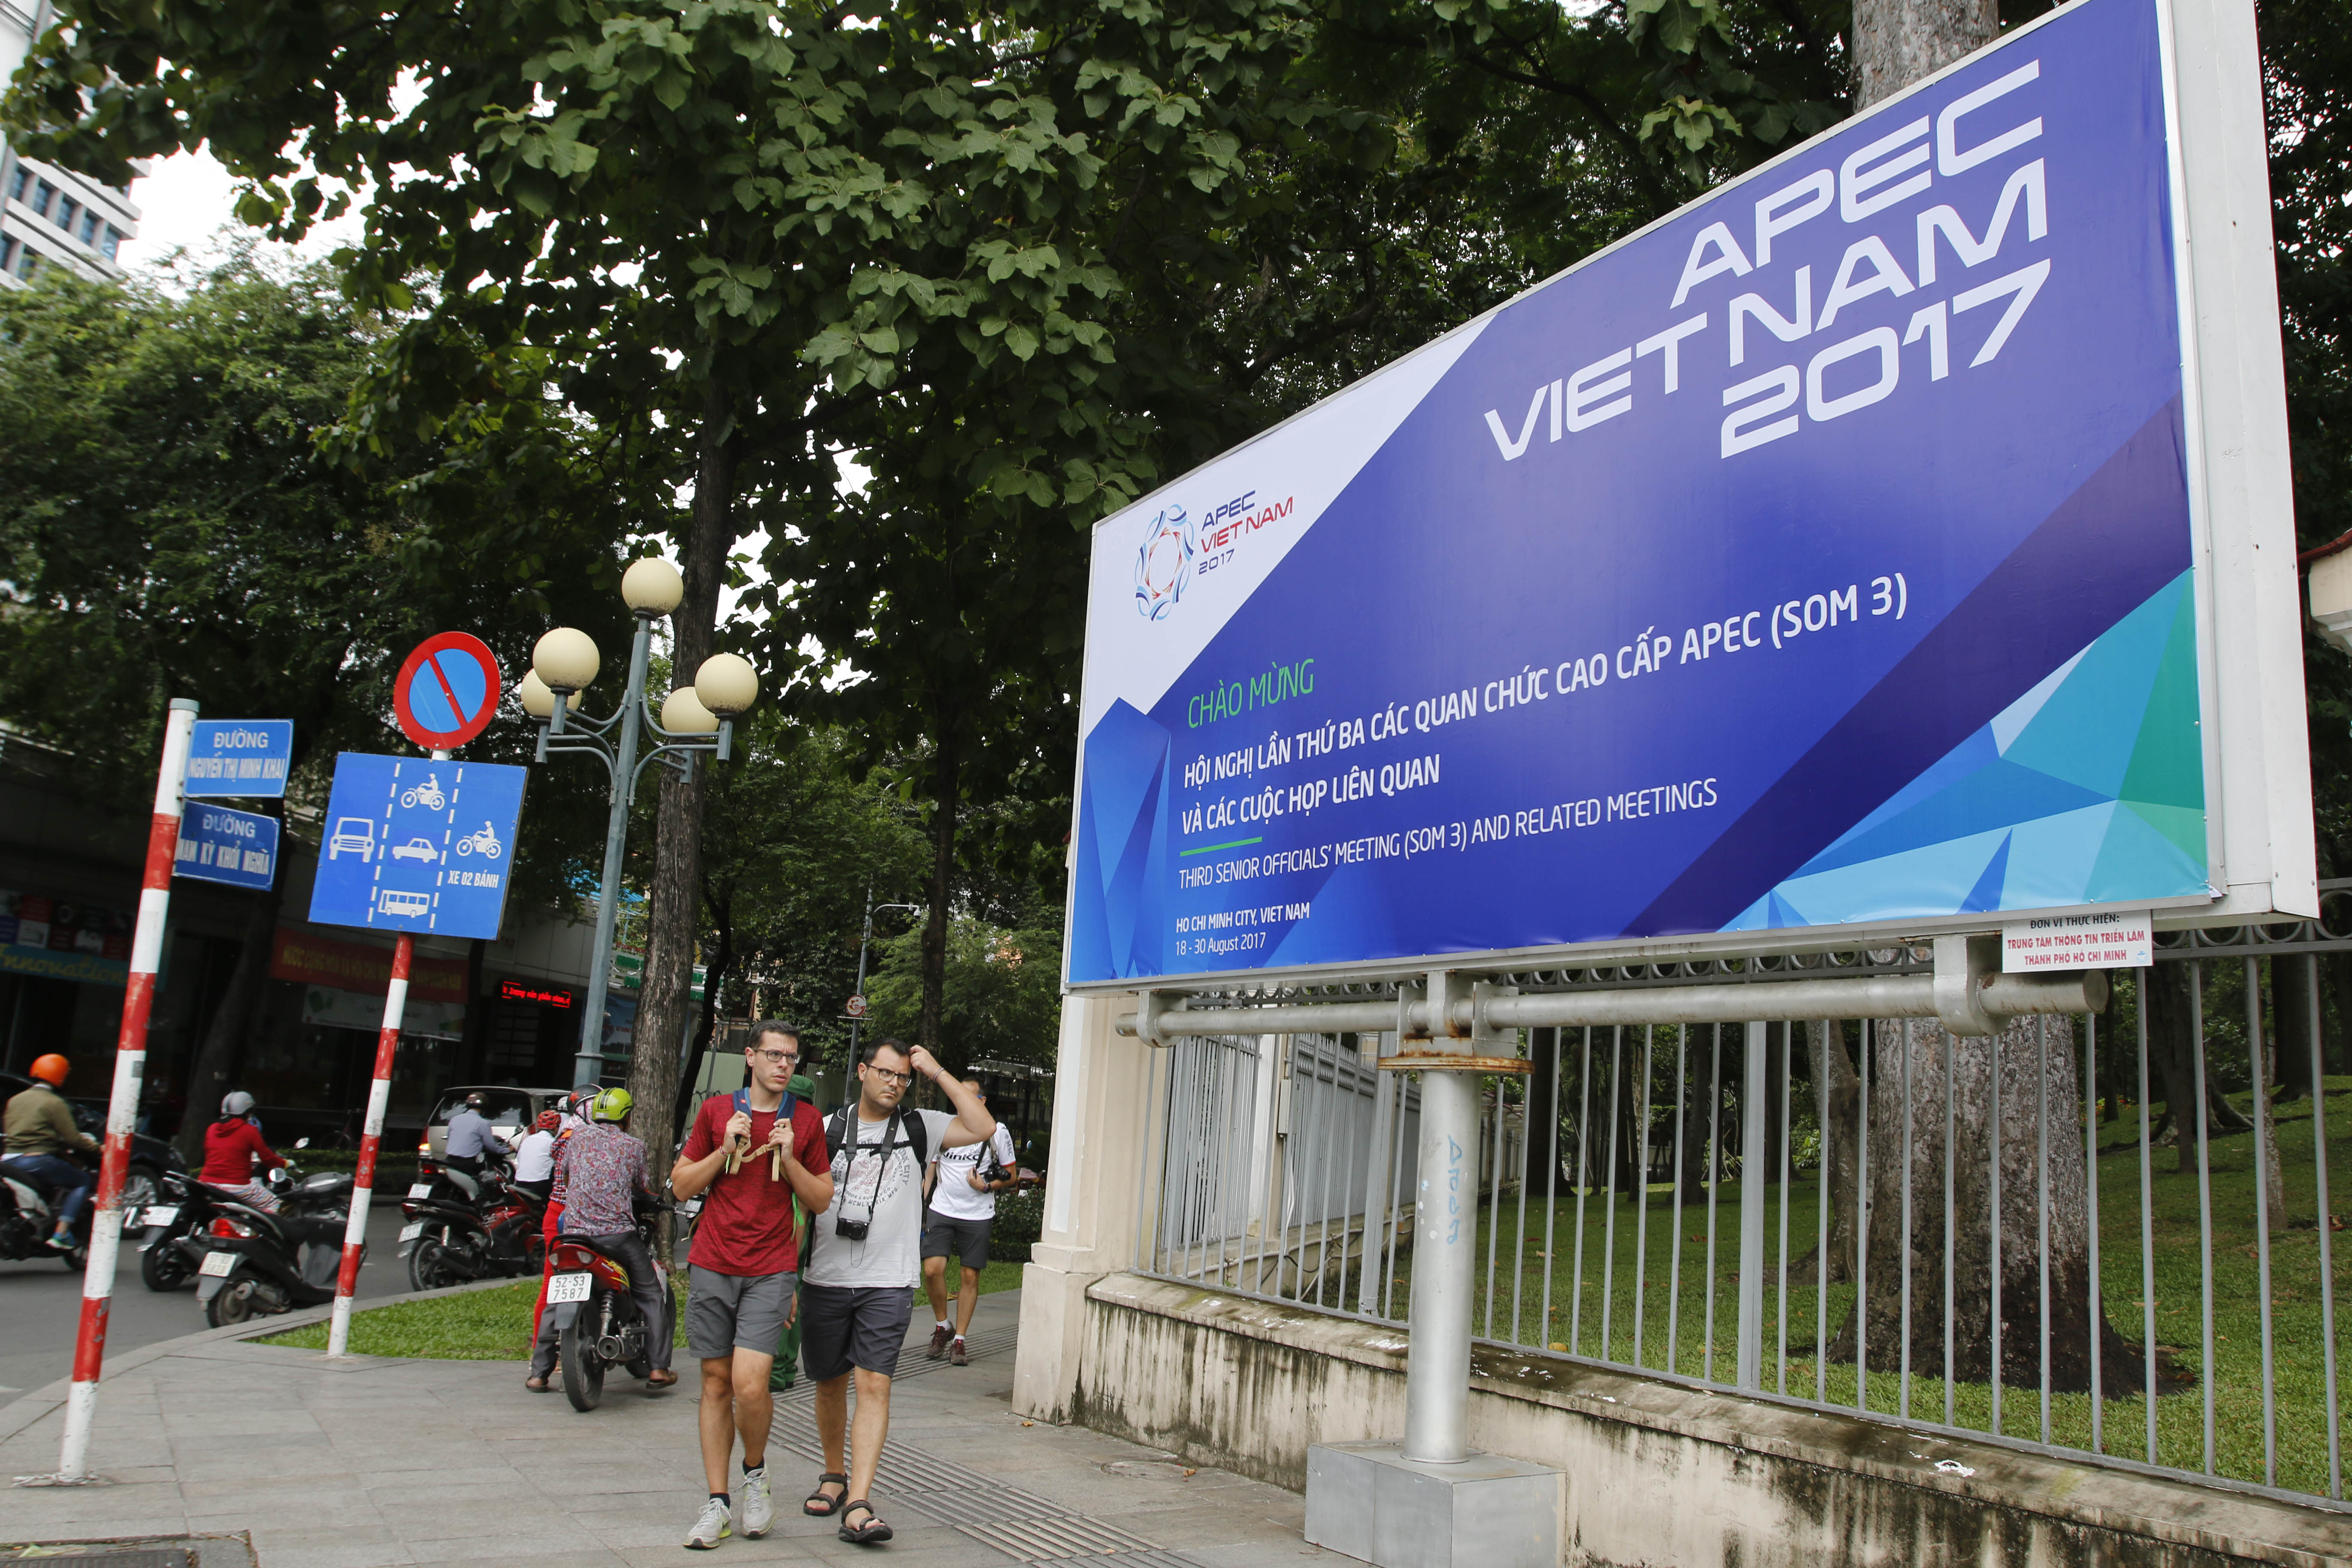 Third senior officials' meeting and Related Meetings begin in Ho Chi Minh city